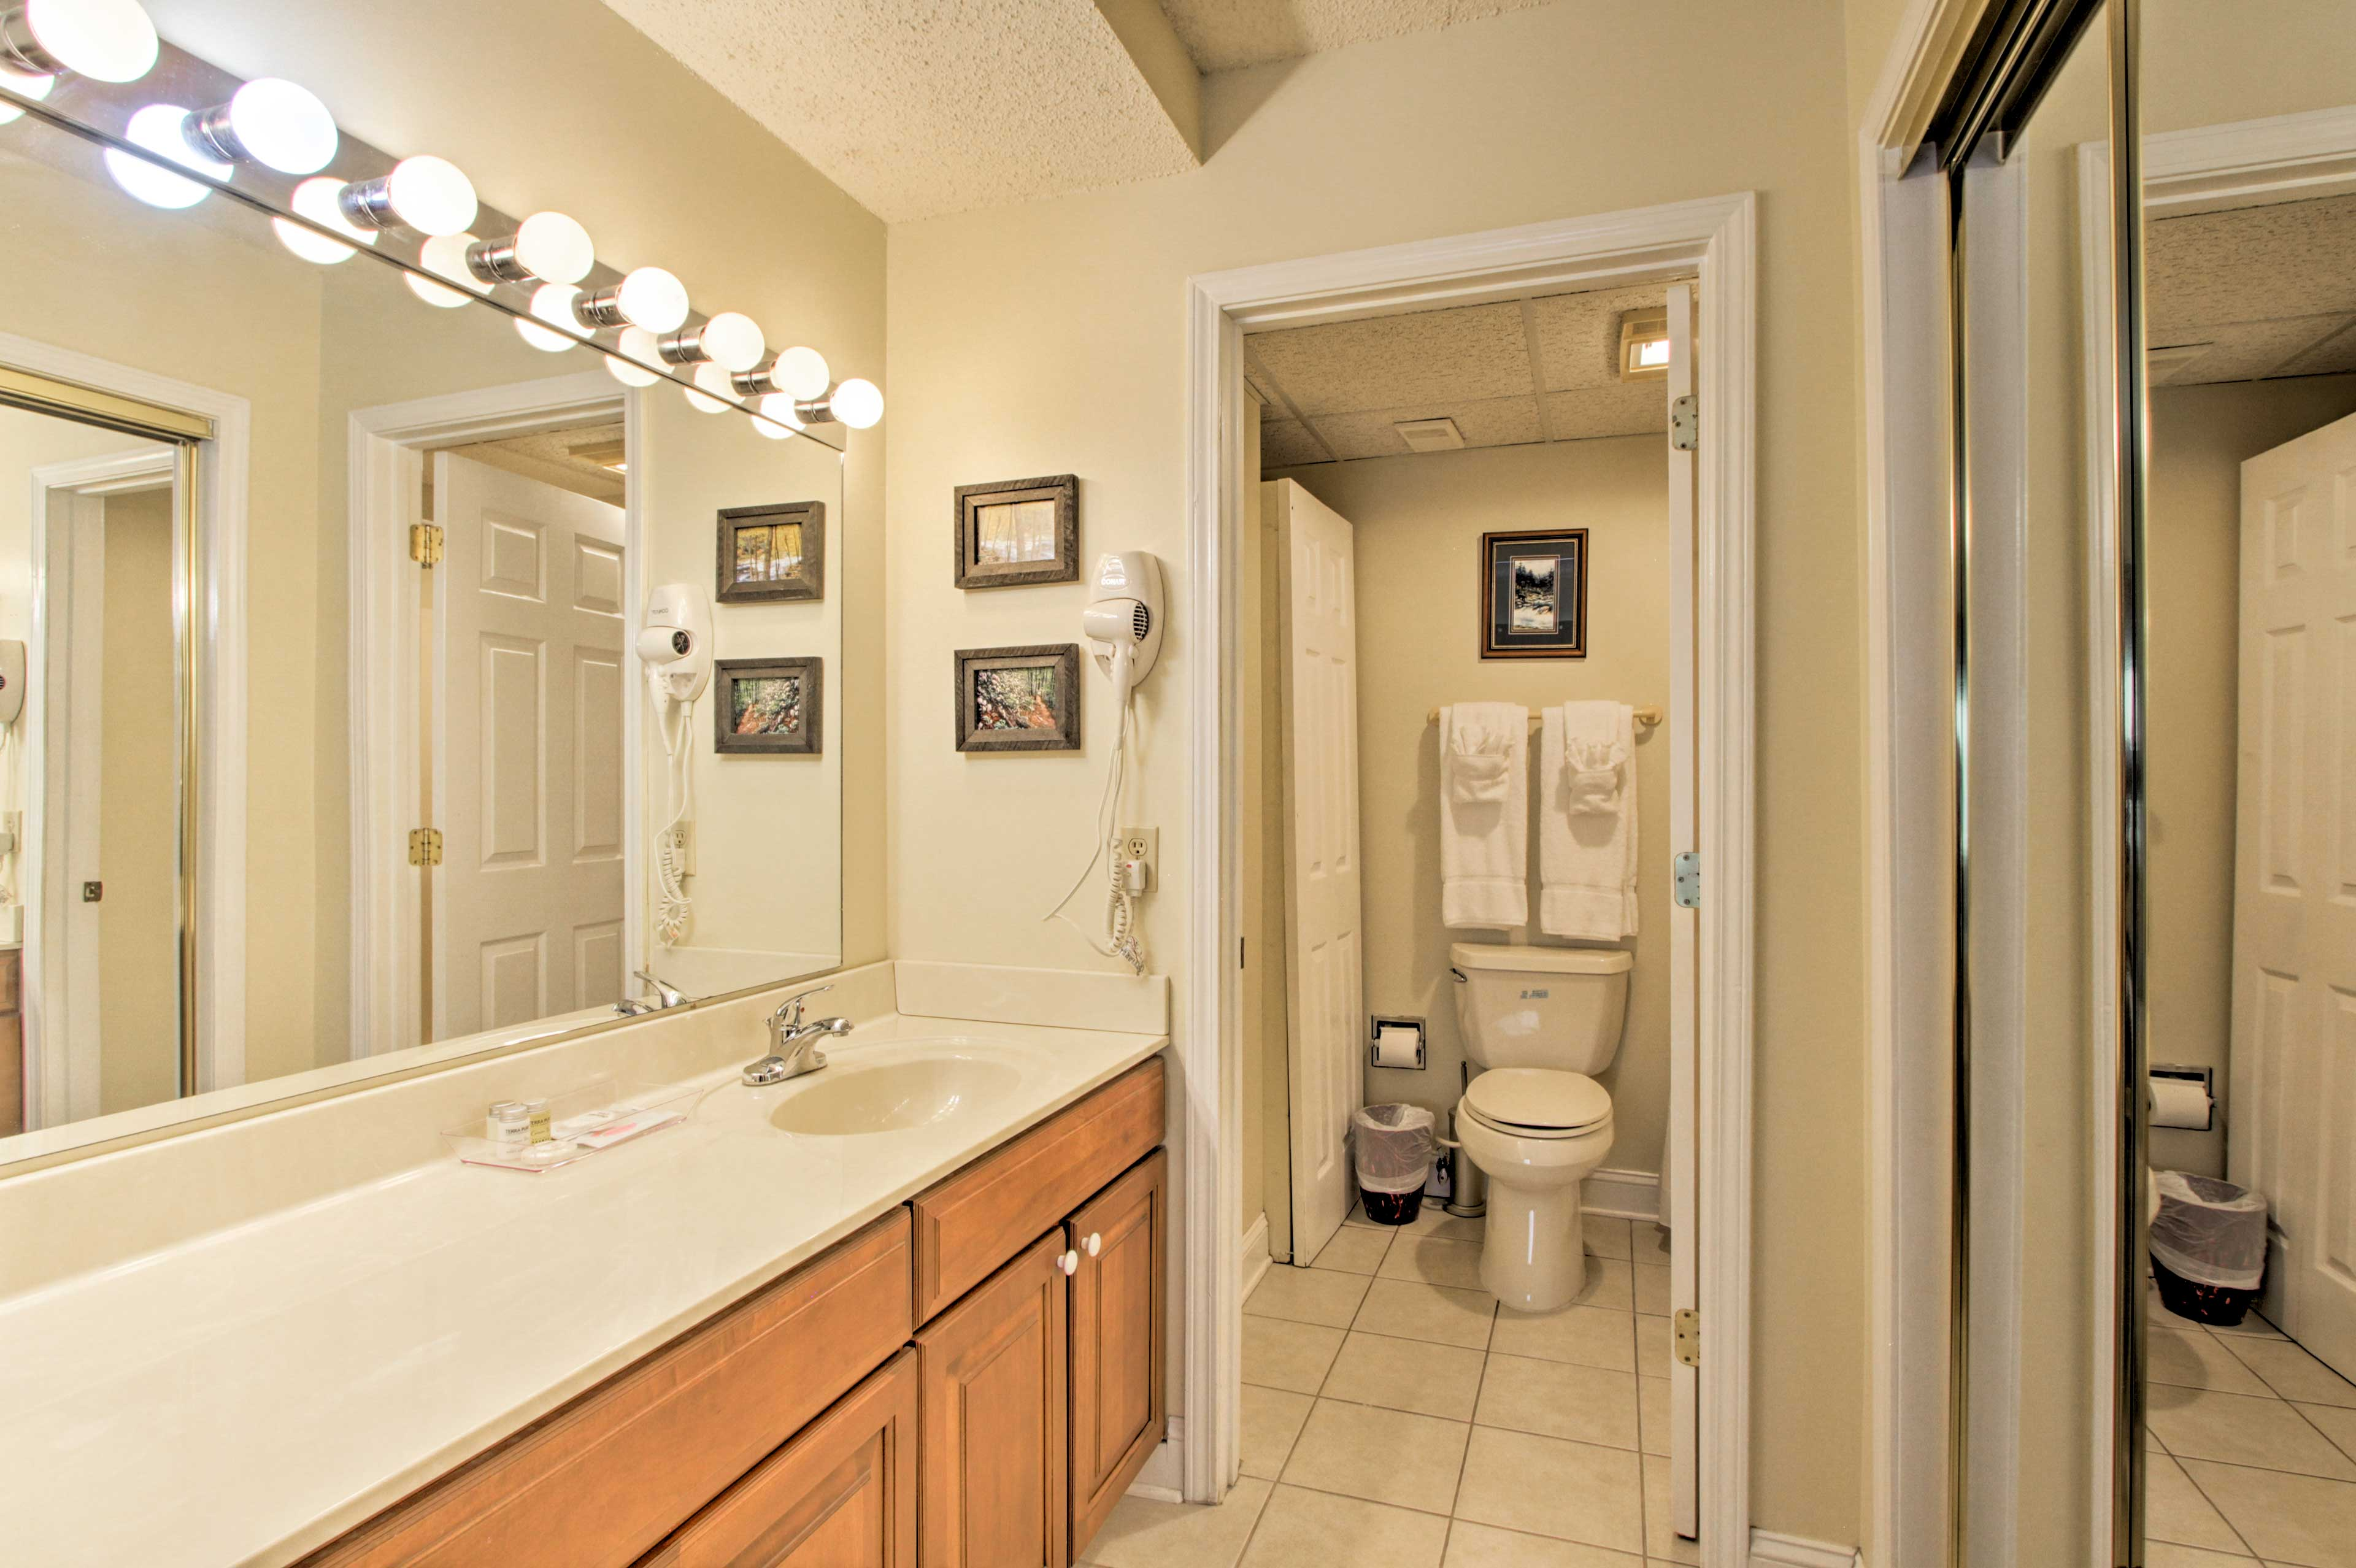 The lengthy vanity provides plenty of room for more than 1 to get ready.